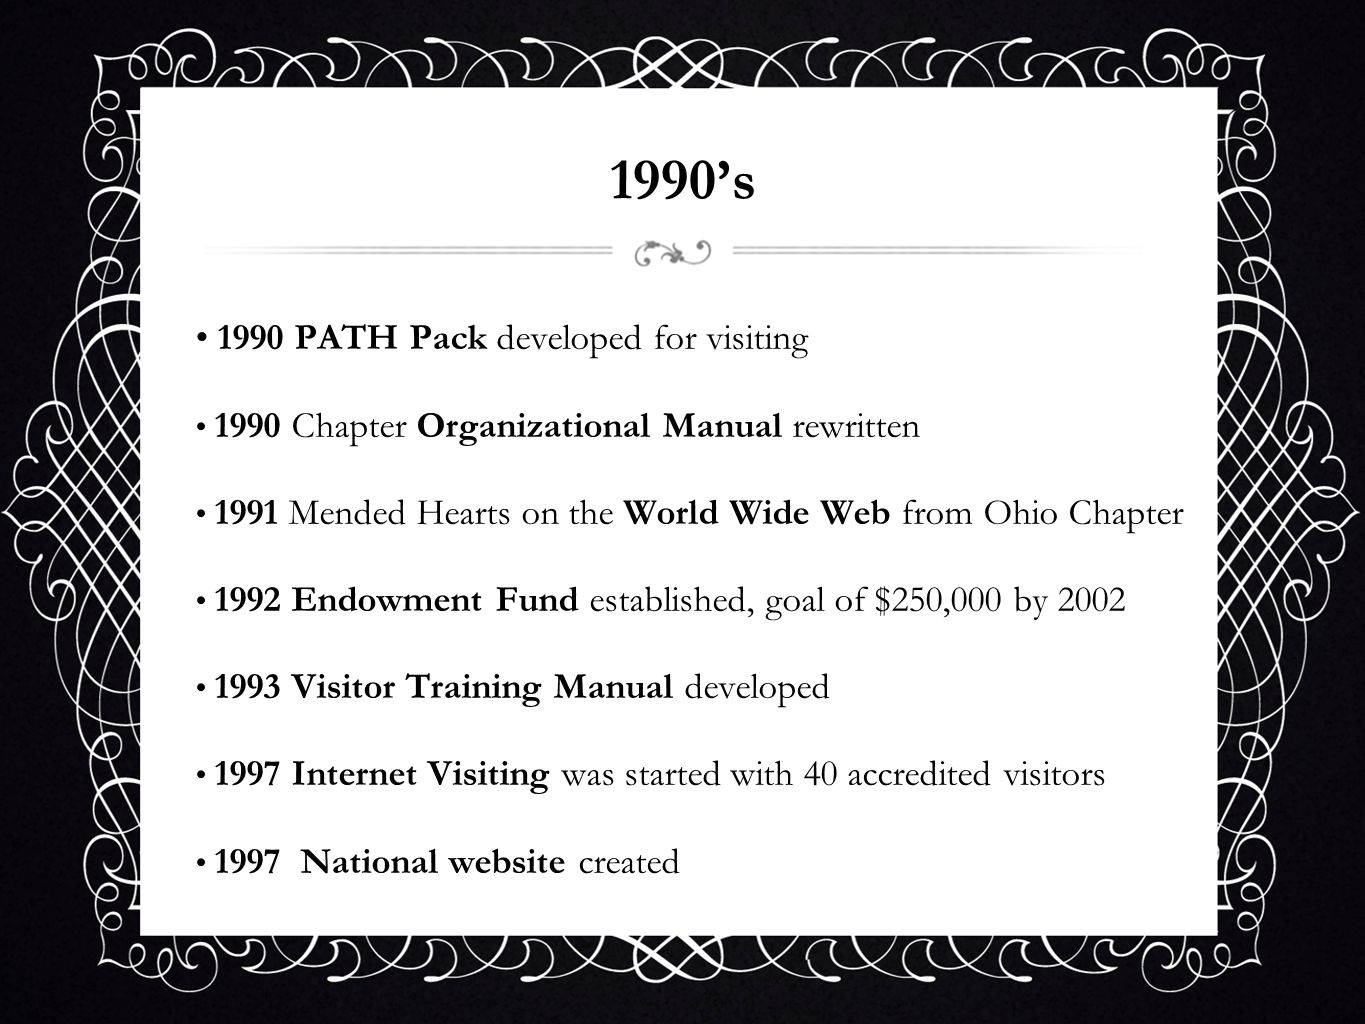 1990s 1990 PATH Pack developed for visiting 1990 Chapter Organizational Manual rewritten 1991 Mended Hearts on the World Wide Web from Ohio Chapter 19